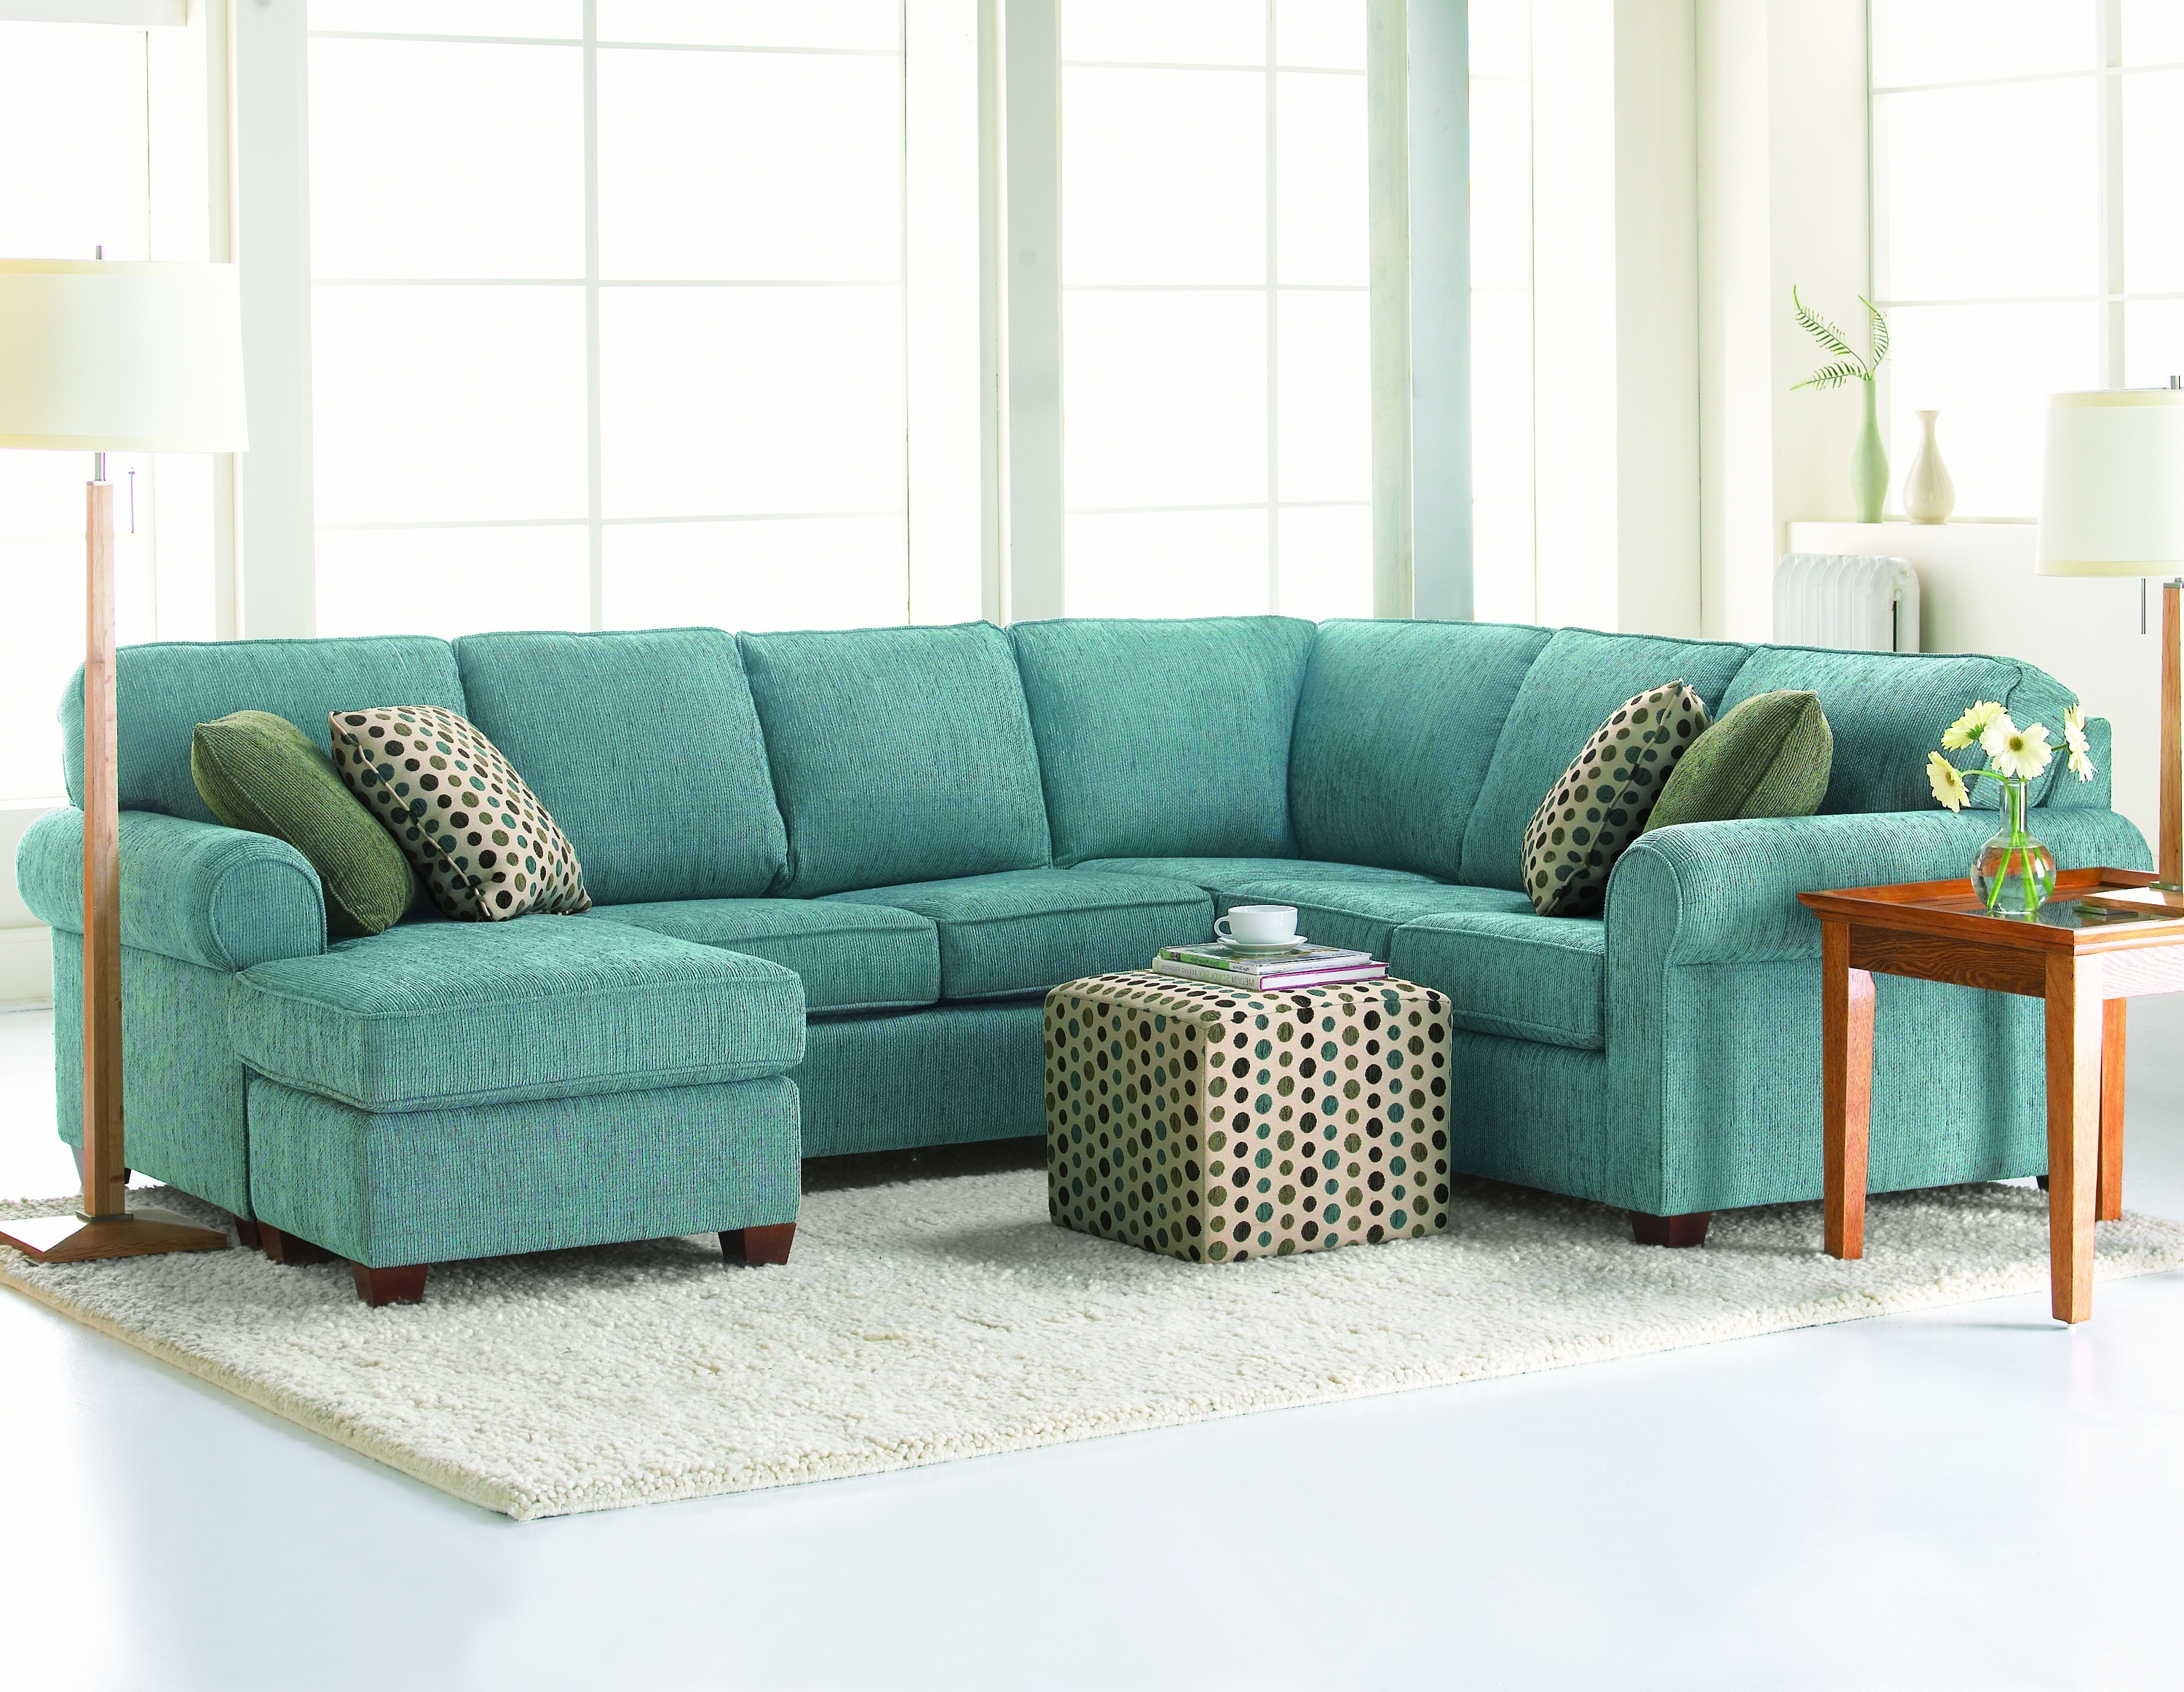 2017 Ontario Canada Sectional Sofas Inside Sectional Sofas – Thompson Brothers Furniture (View 6 of 15)